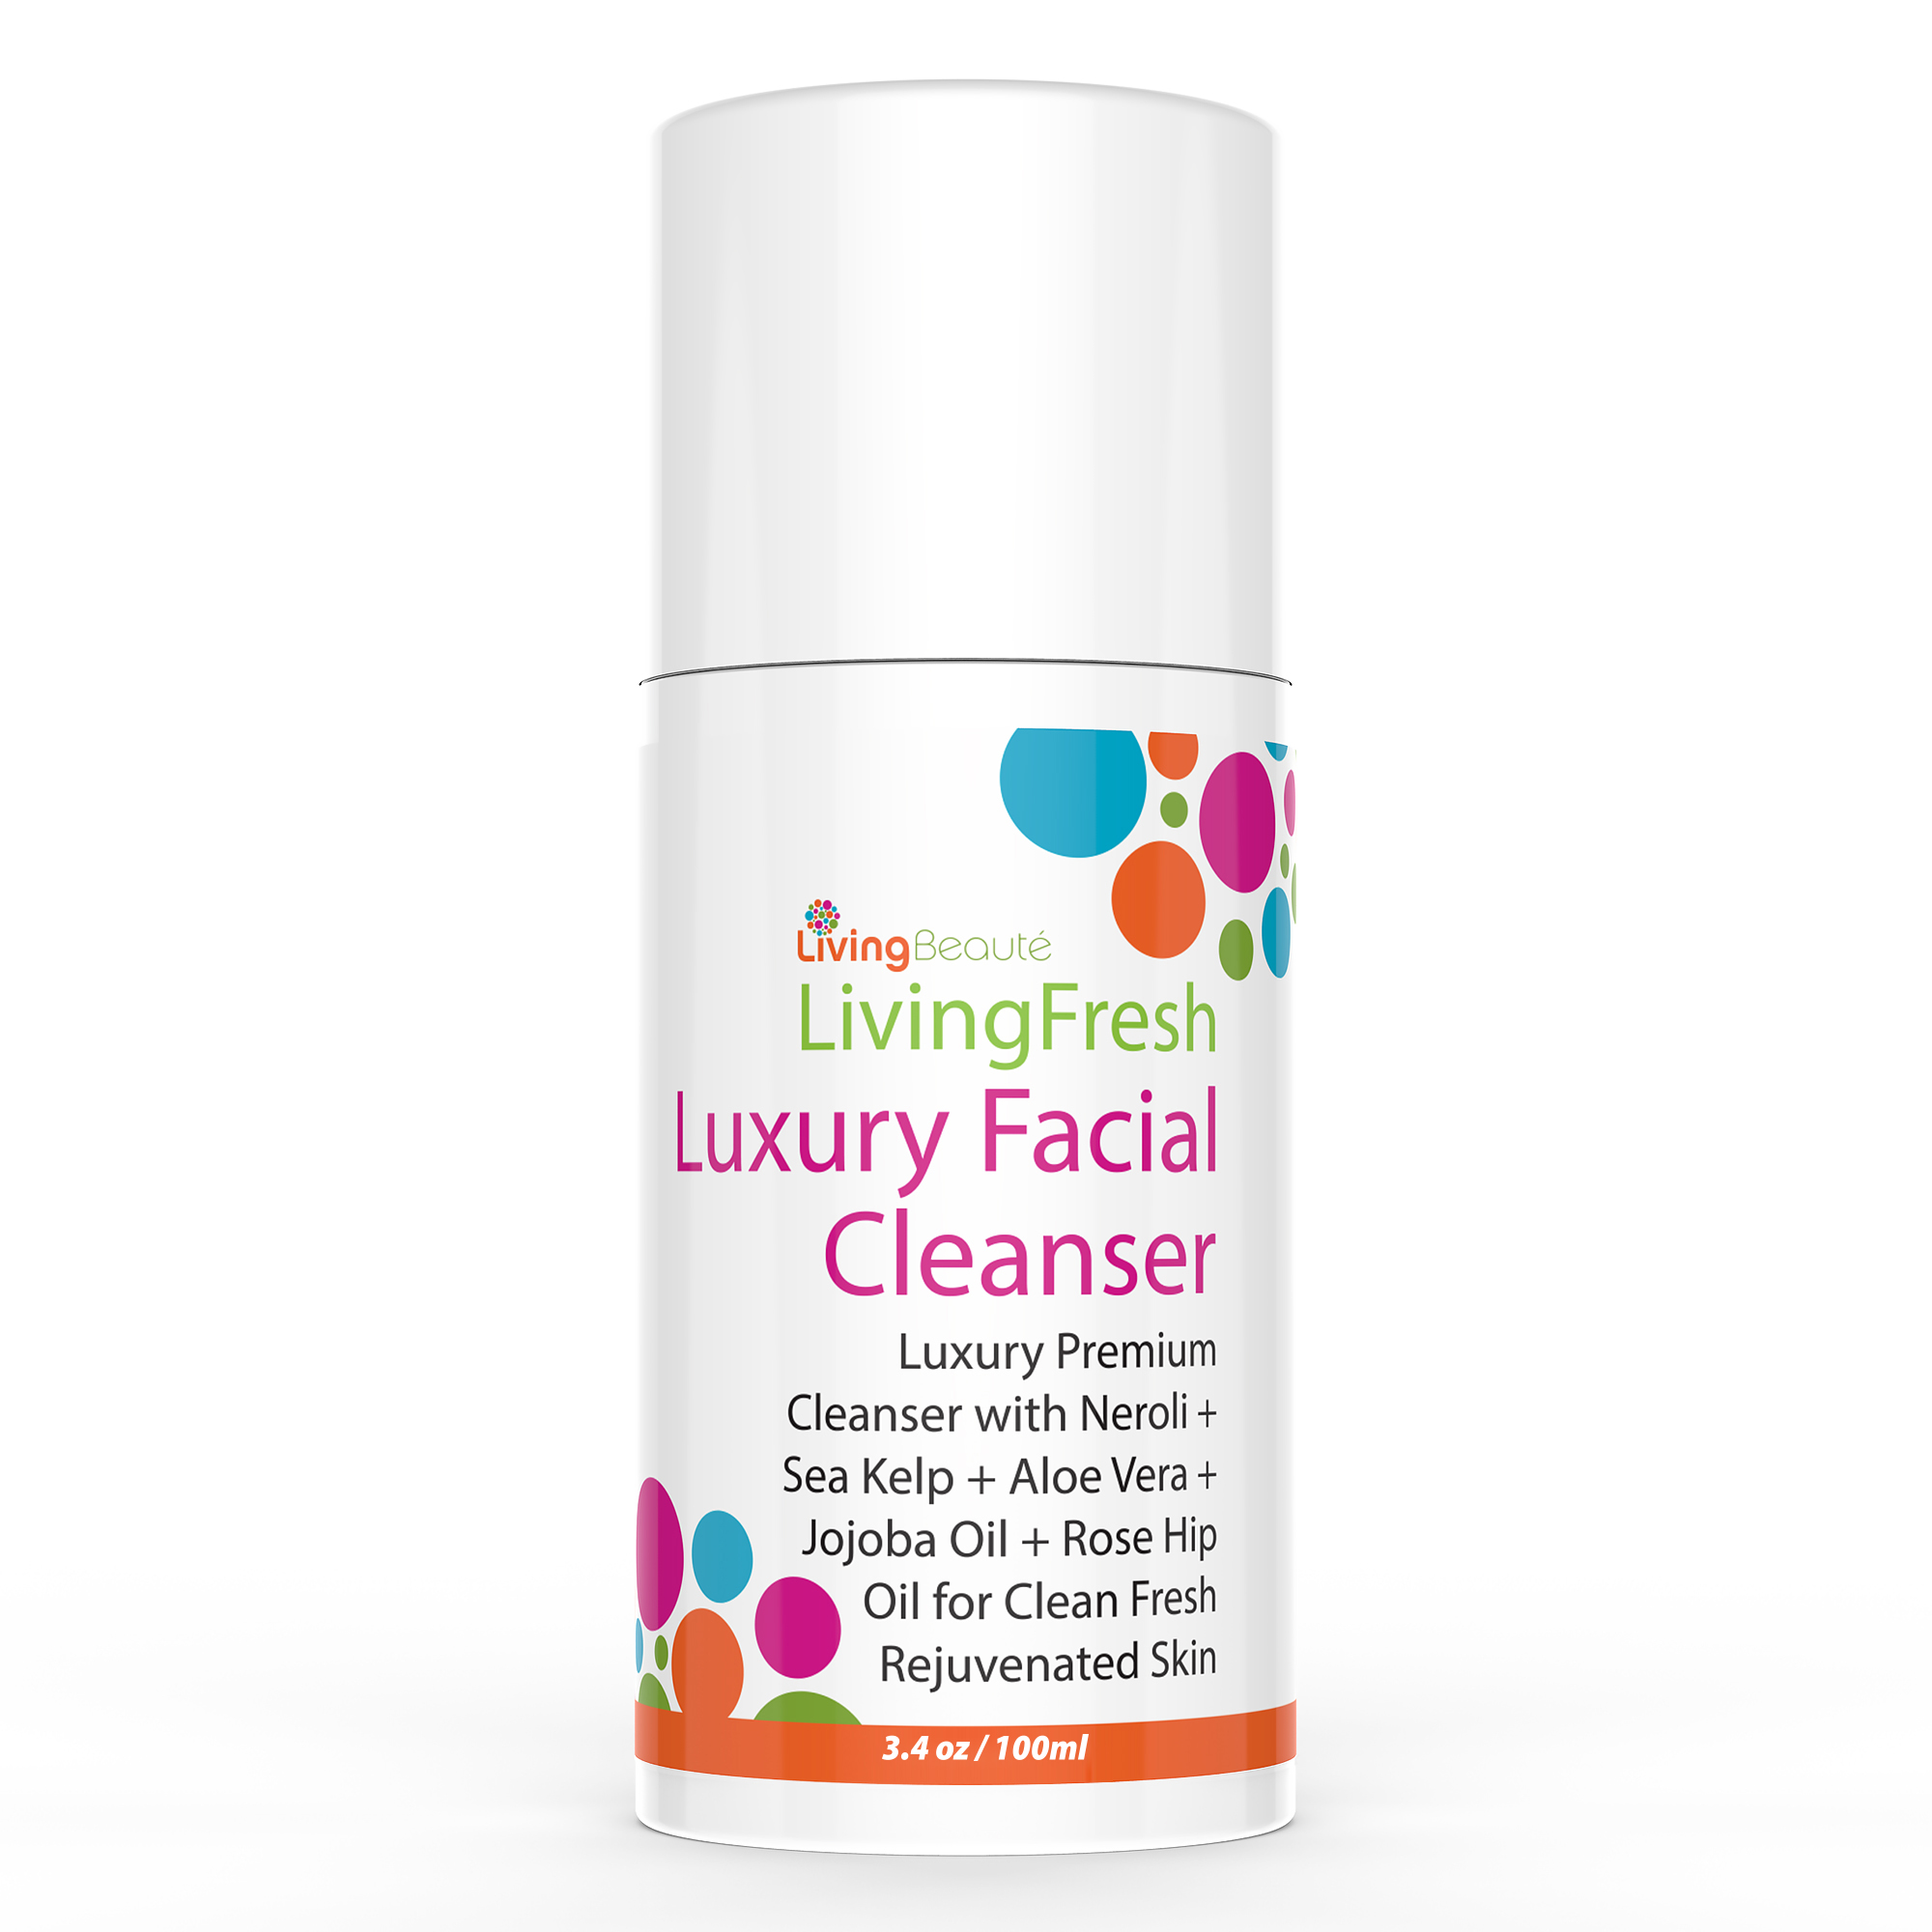 1-LivingFresh-Cleanser-bottle-only